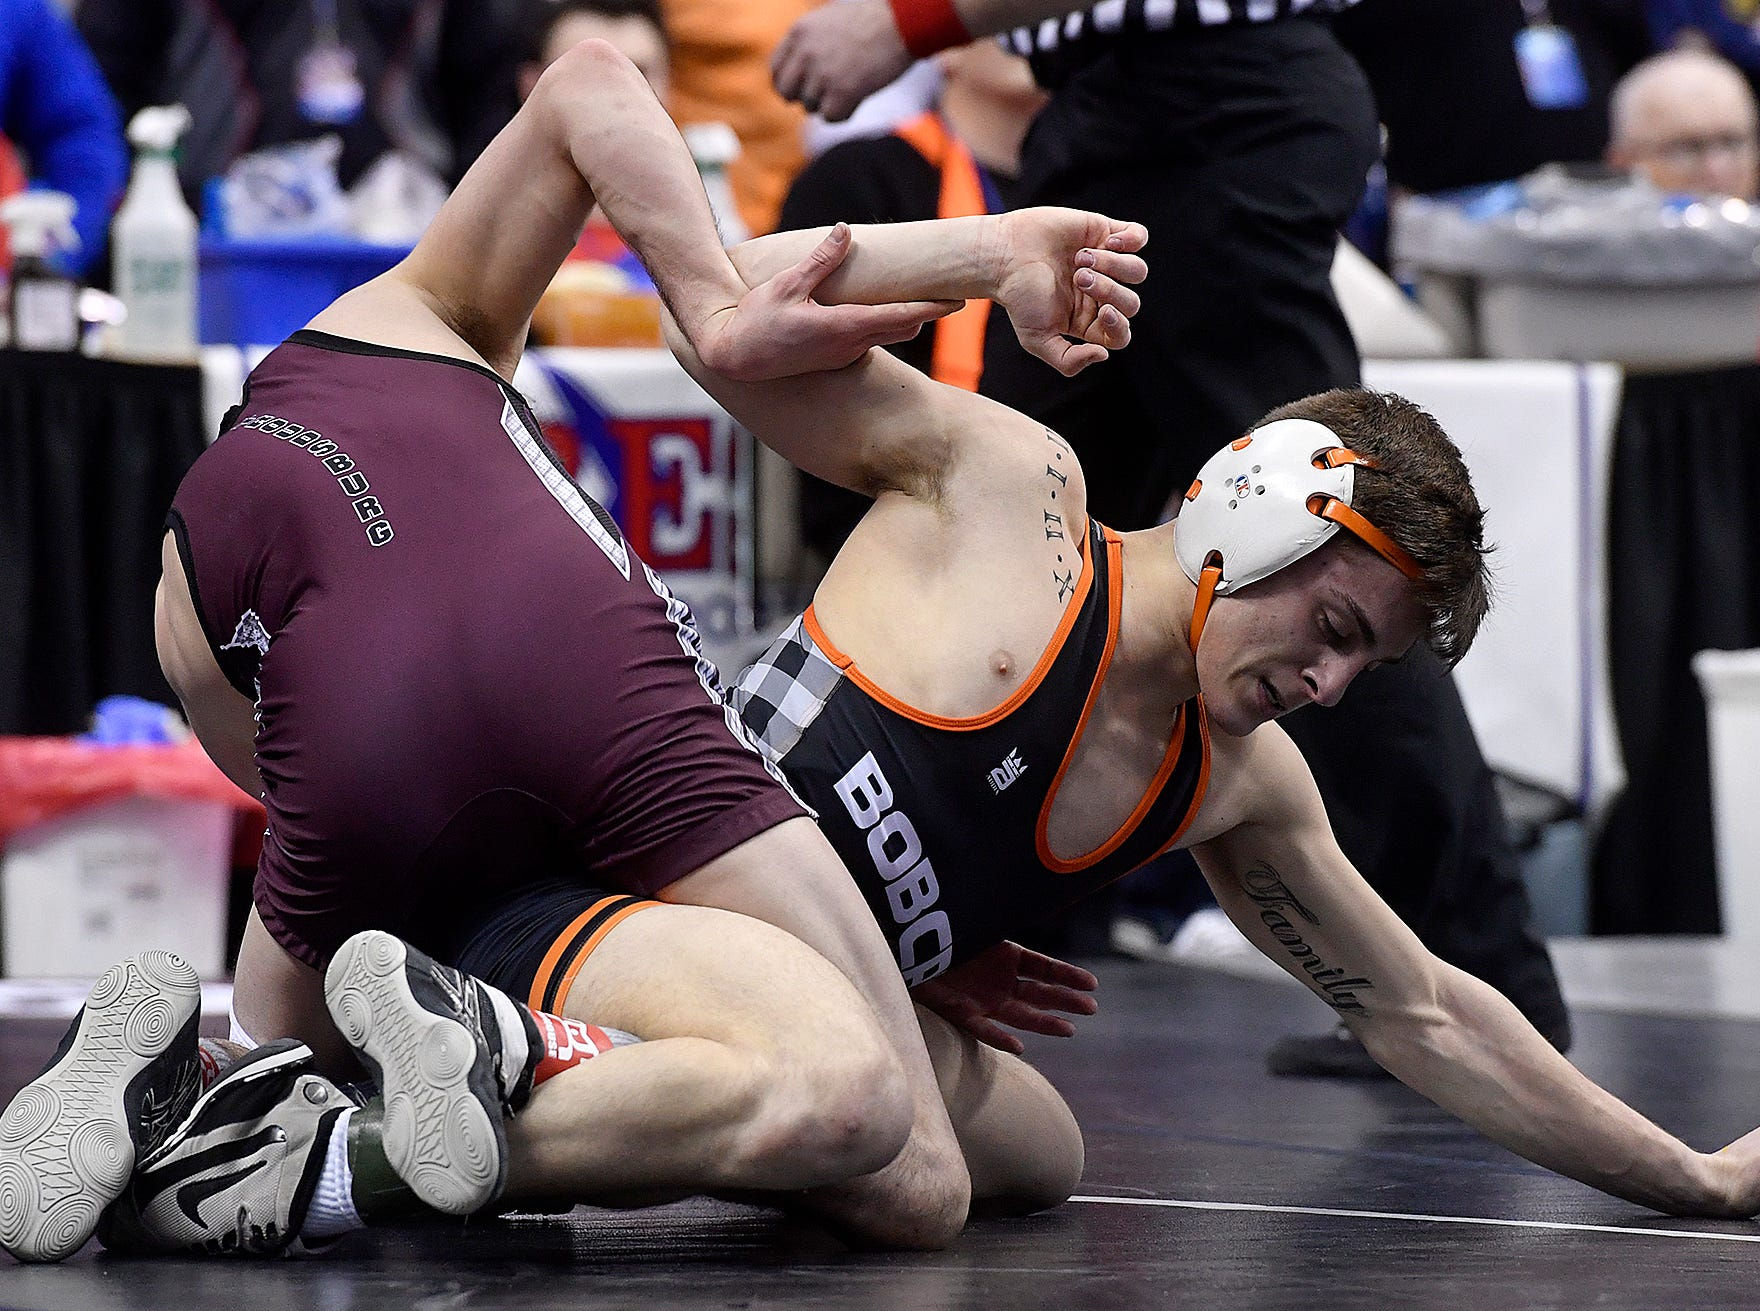 Cole Wilson of Northeastern, right, wrestles Cameron Enriquez of Stroudsburg in the PIAA Class 3-A 120 pound first round match, Thursday, March 7, 2019.John A. Pavoncello photo